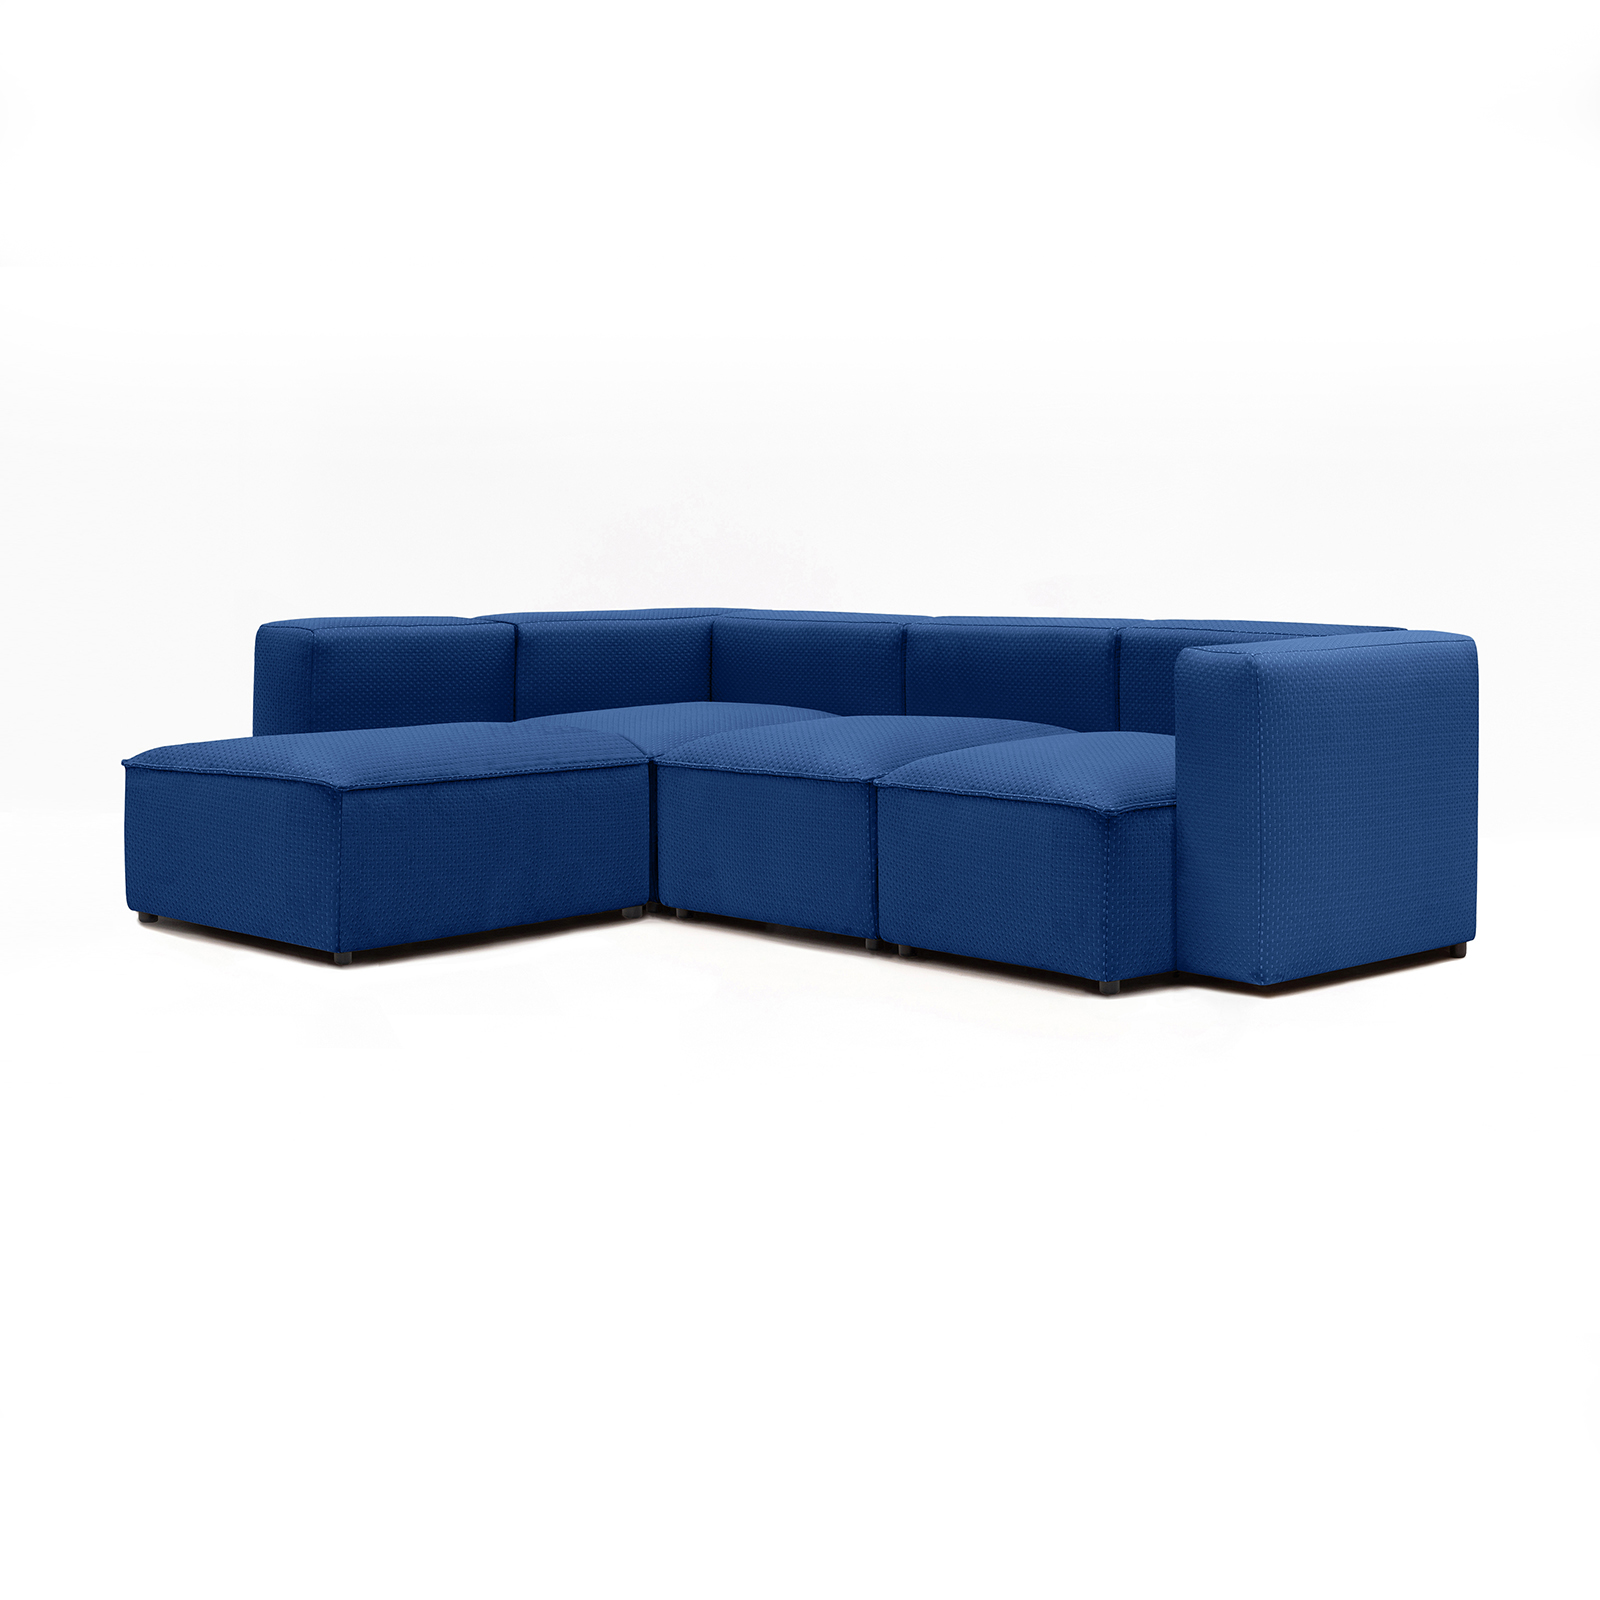 Permanent Future Easey Sofa 3 Seater Sectional Long Left Zoom Electric Pf Sf Ea X3l L Ze 45º View